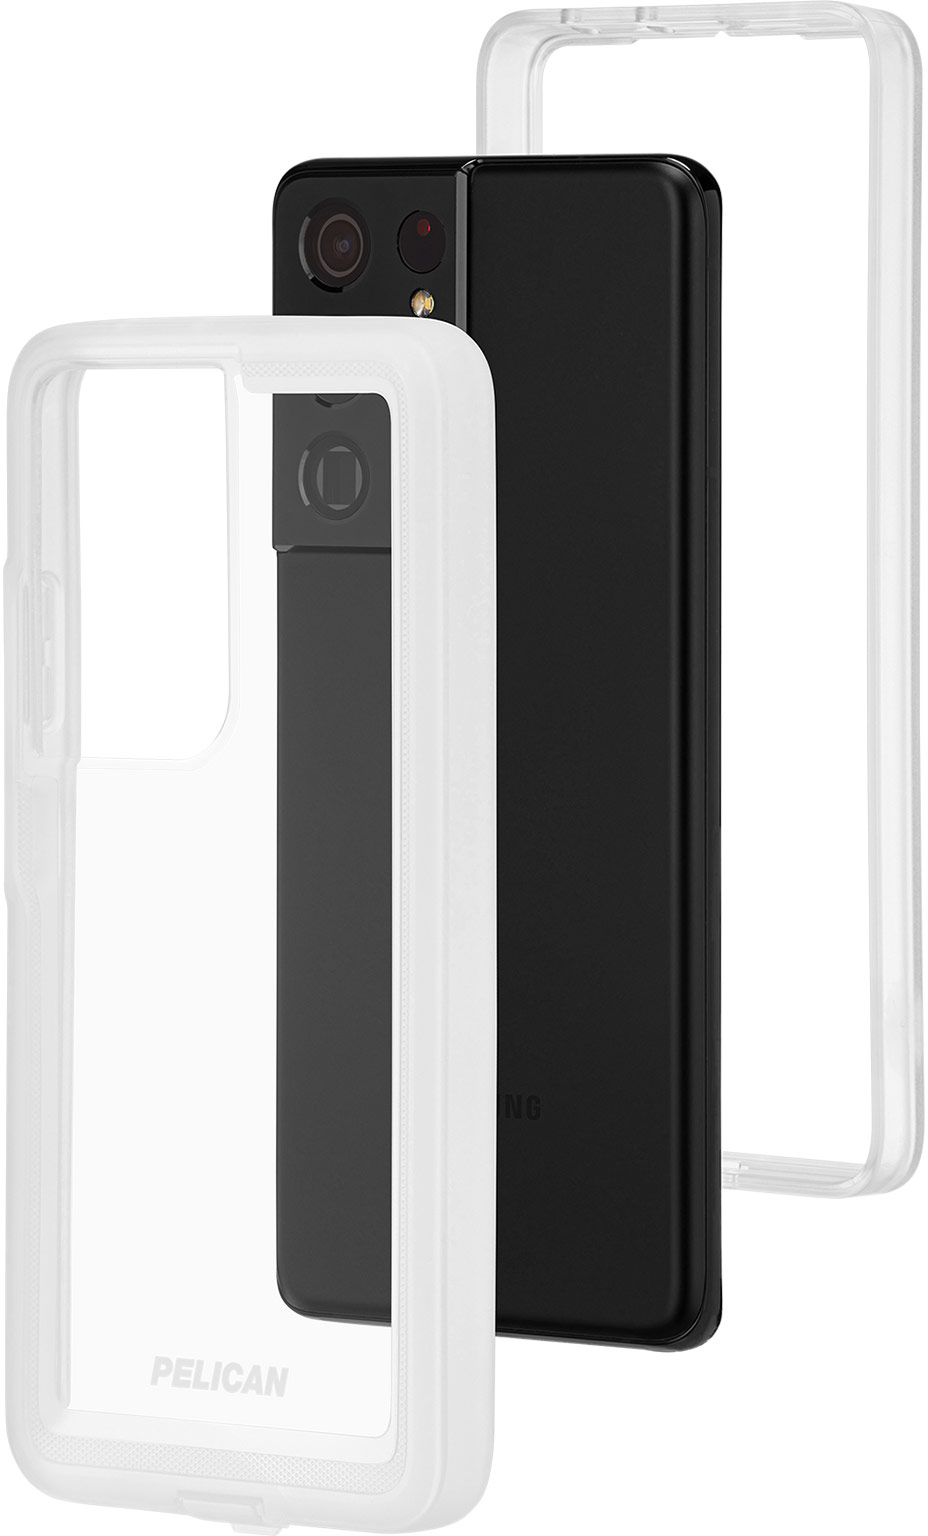 pelican pp045214 samsung galaxy s21 ultra 5g voyager phone case clear